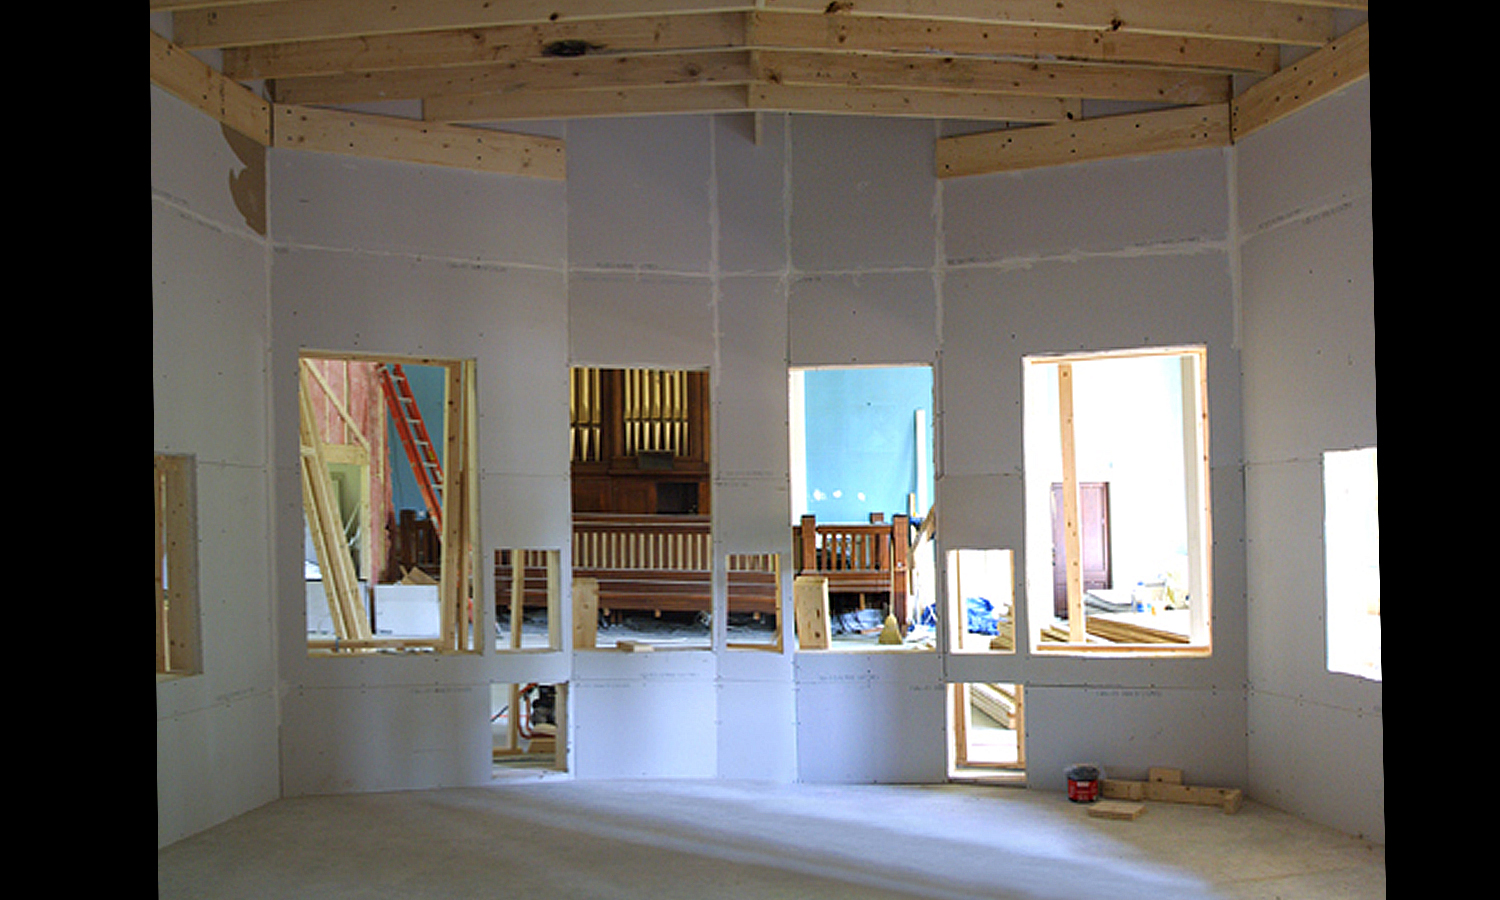 Control room with three layers of 5/8 sheetrock